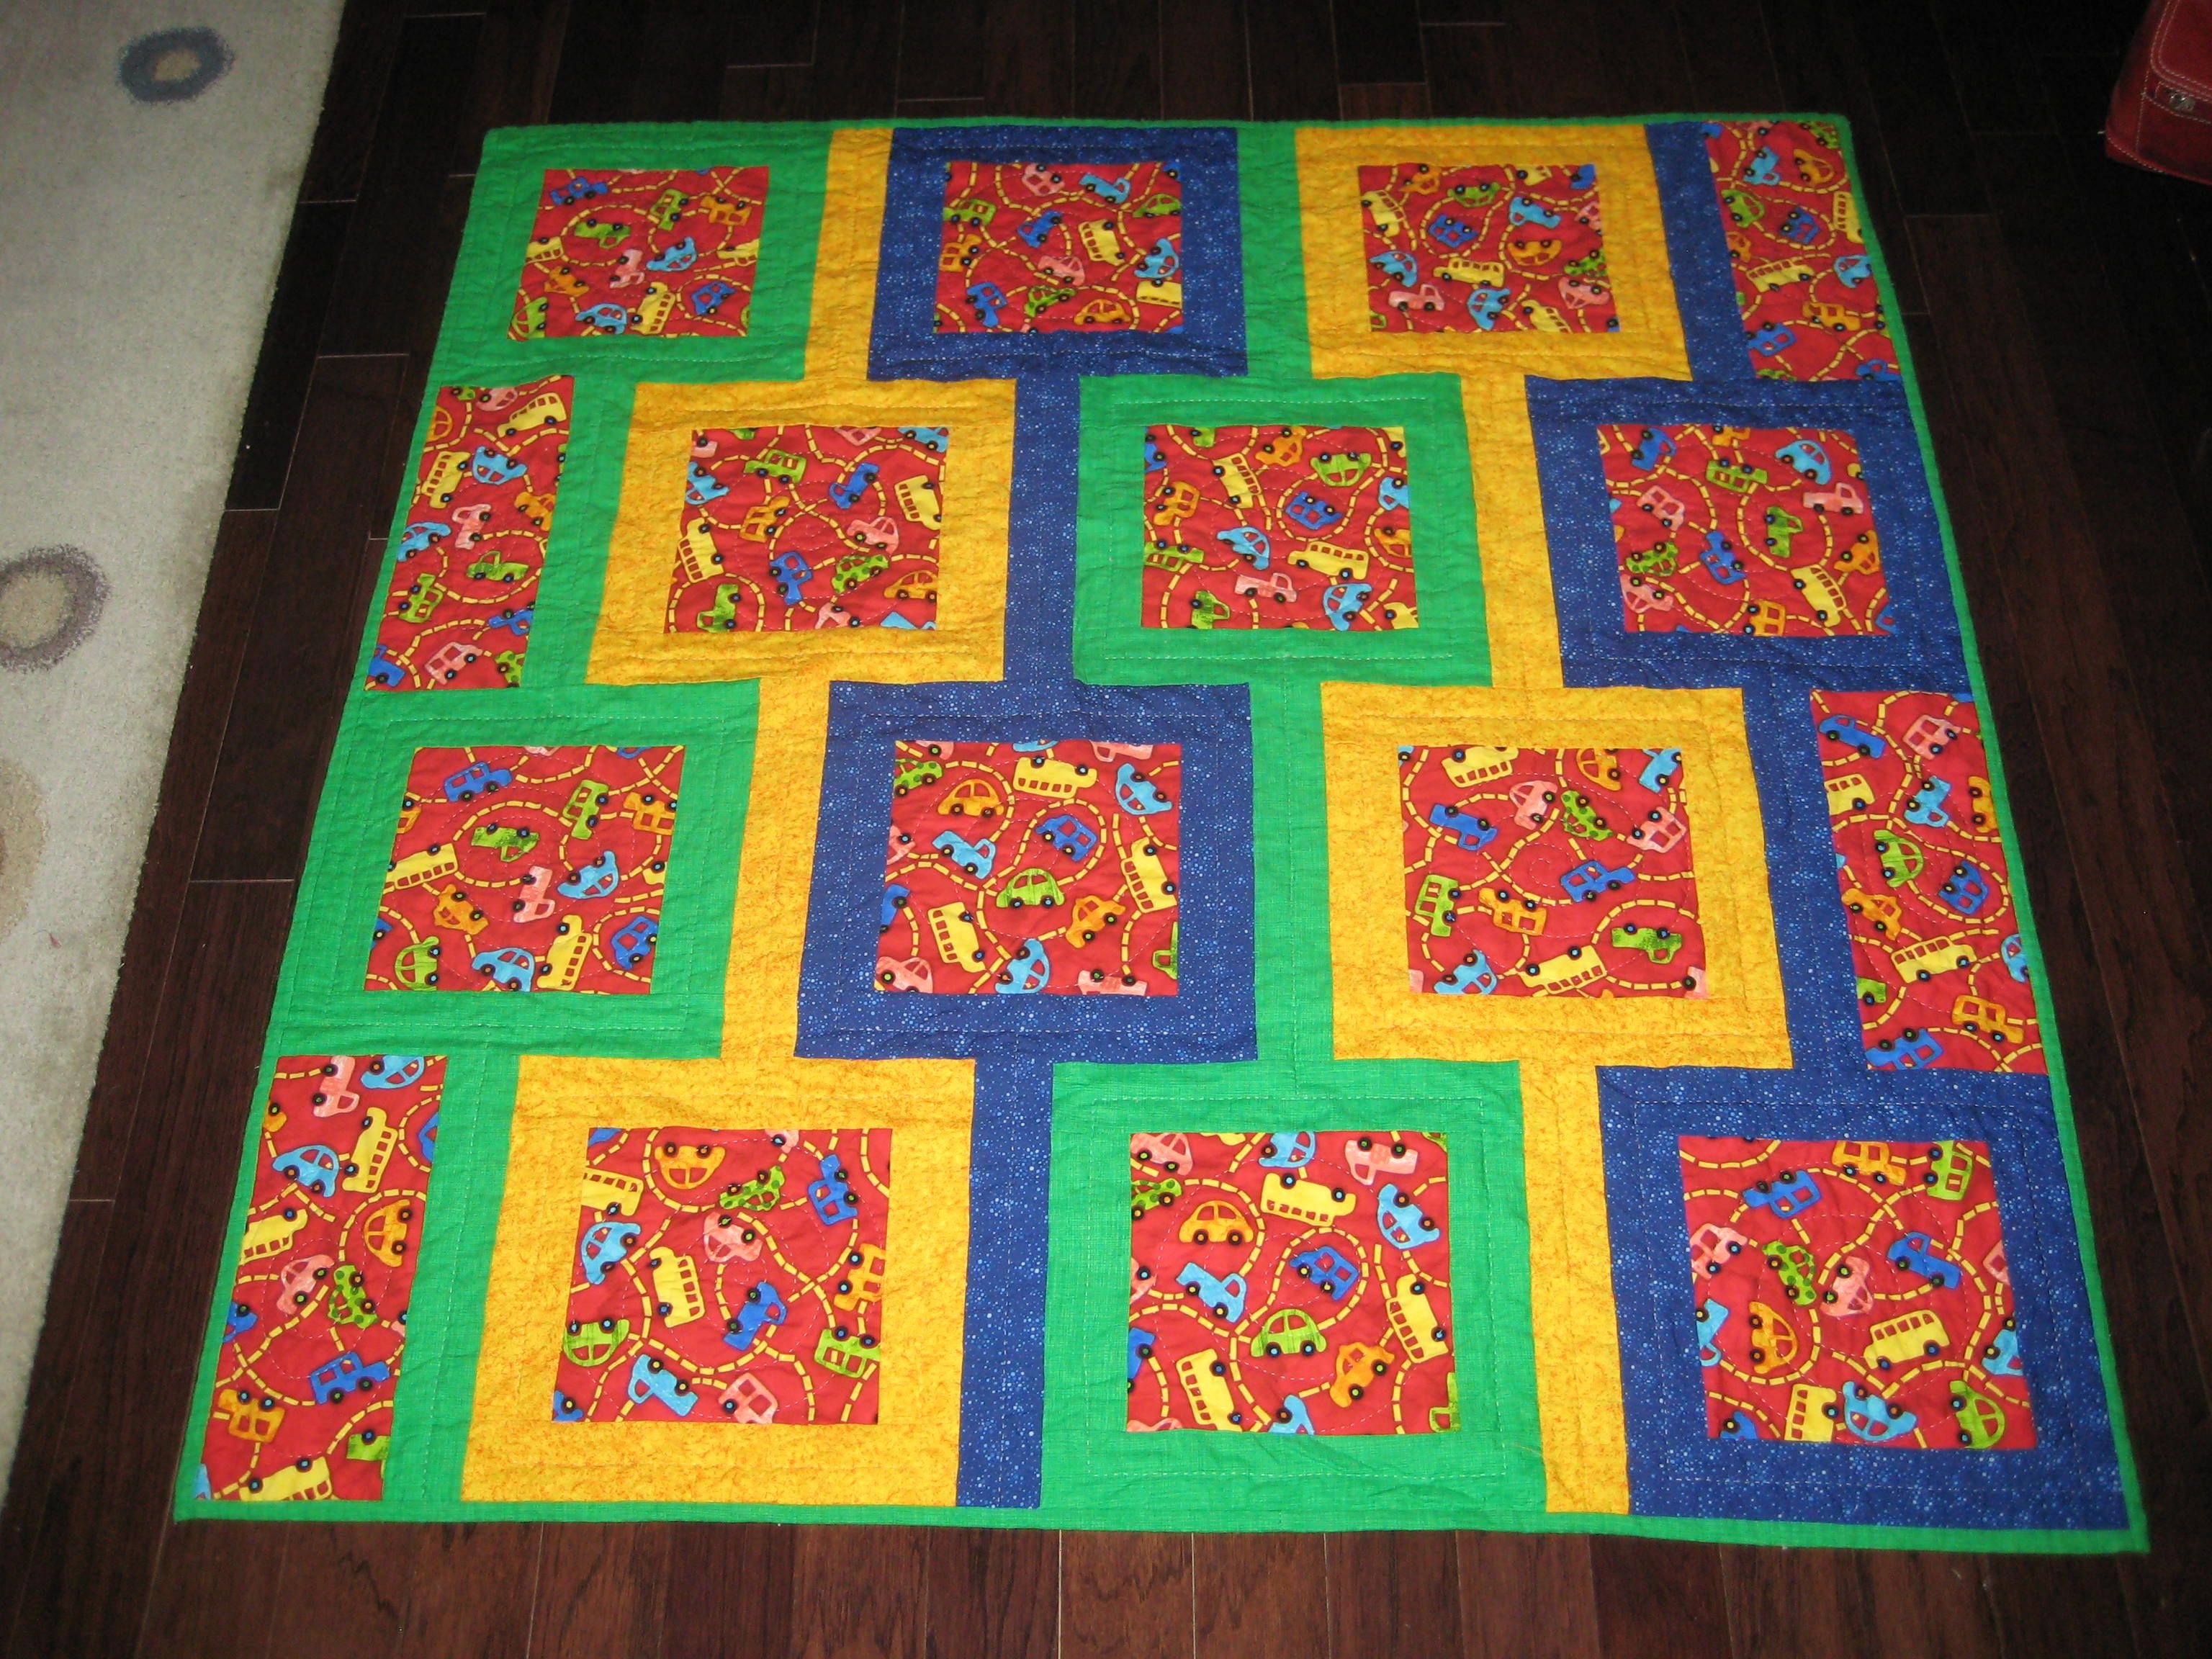 Project Linus quilts | Quilts - Modern | Pinterest | Kid quilts ... : linus project quilts - Adamdwight.com